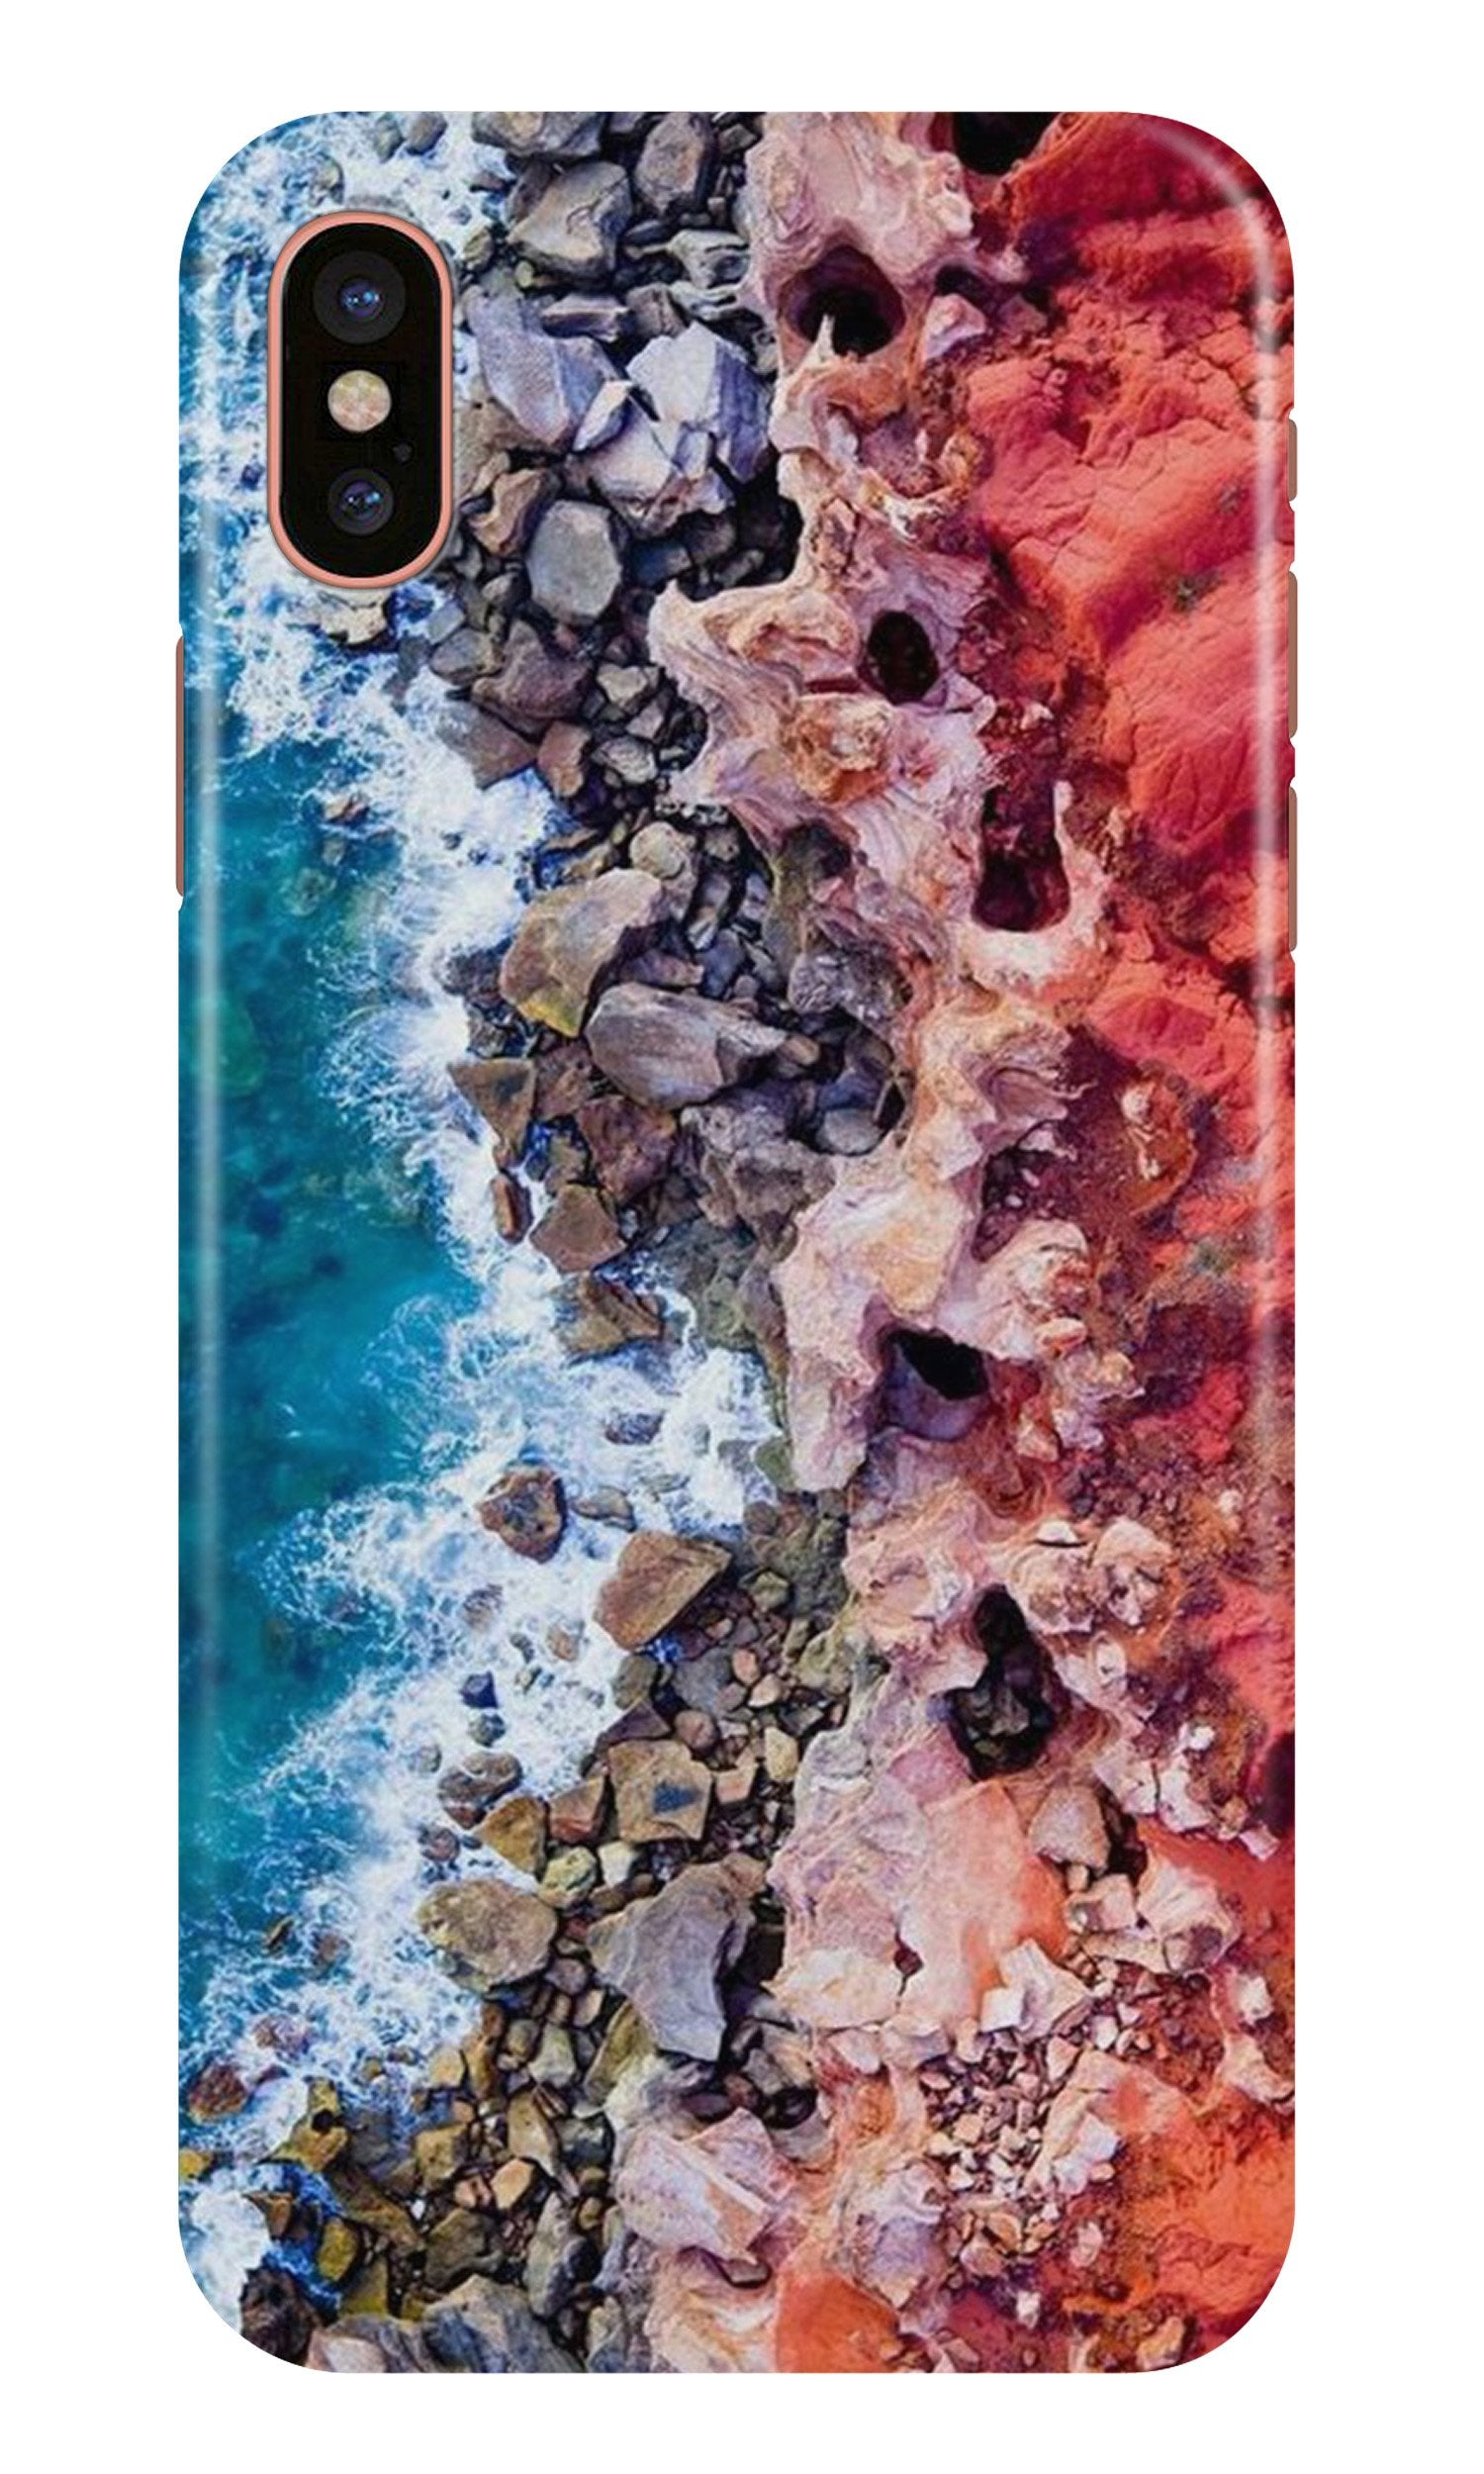 Sea Shore Case for iPhone Xr (Design No. 273)